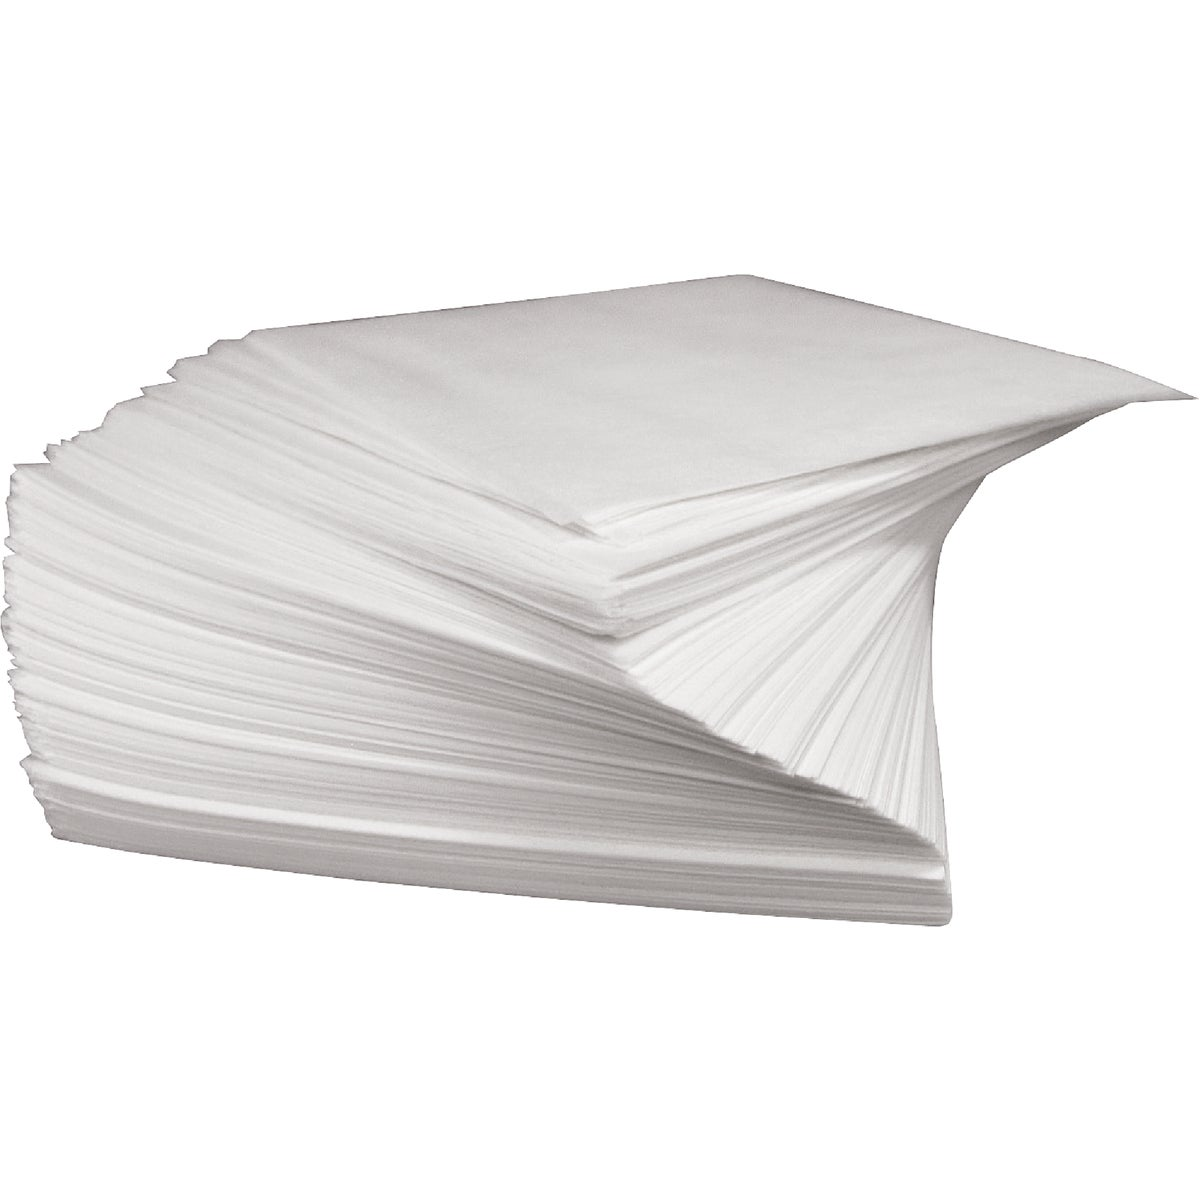 DRY WAXED PATTY PAPER - 10-0102-W by Weston Products